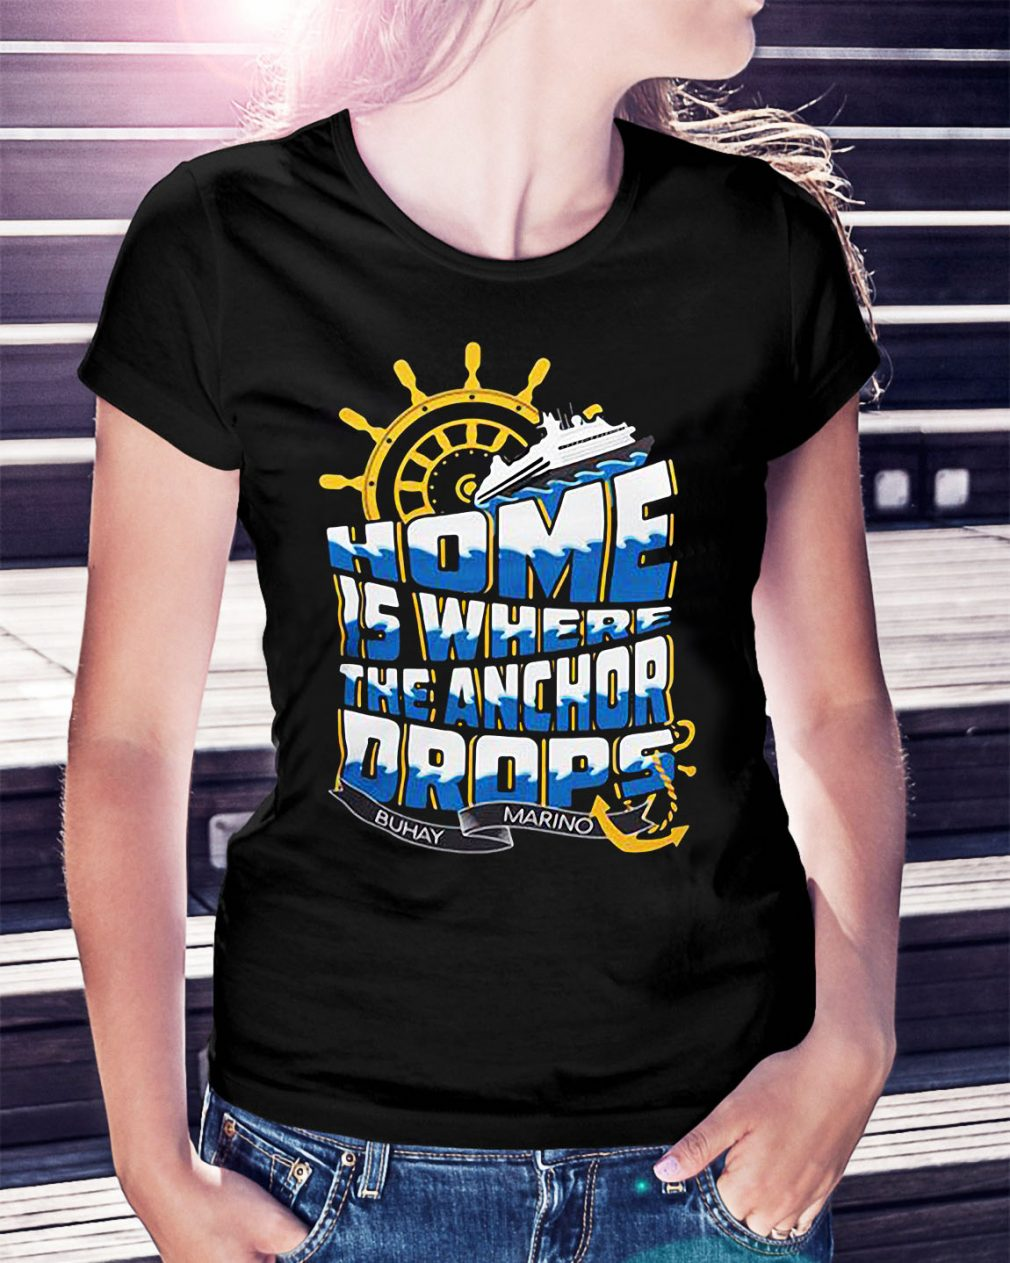 Home is where the anchor drops Buhay Marino Ladies Tee